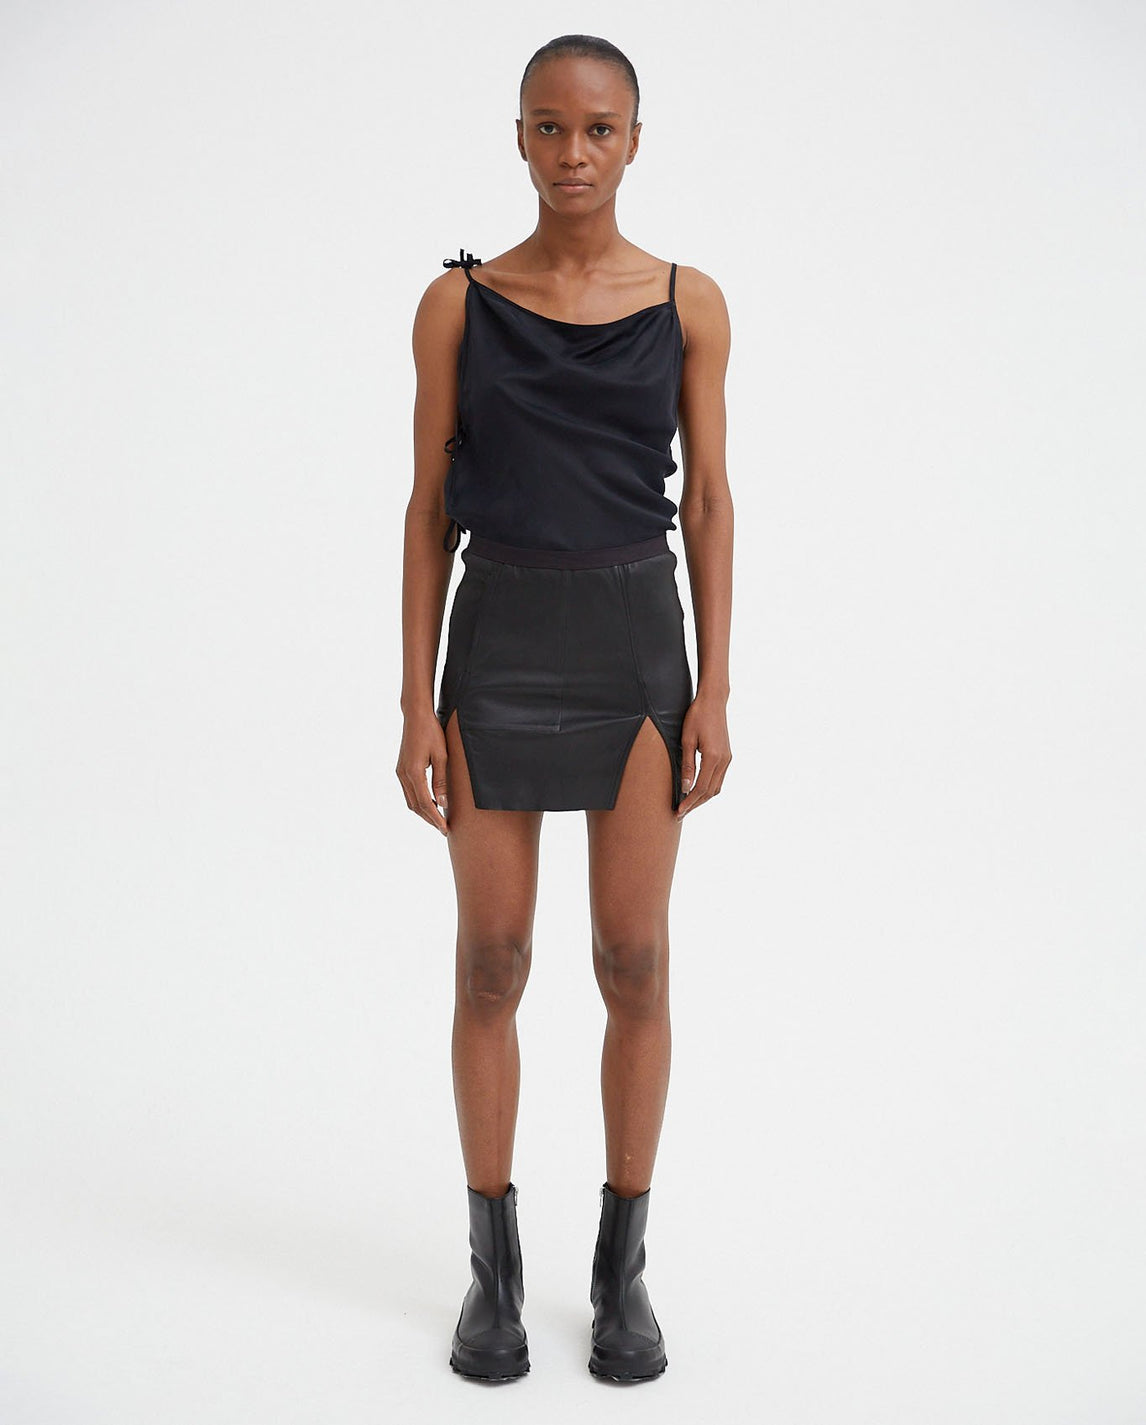 Leather Mini Skirt - Black WOMENS RICK OWENS